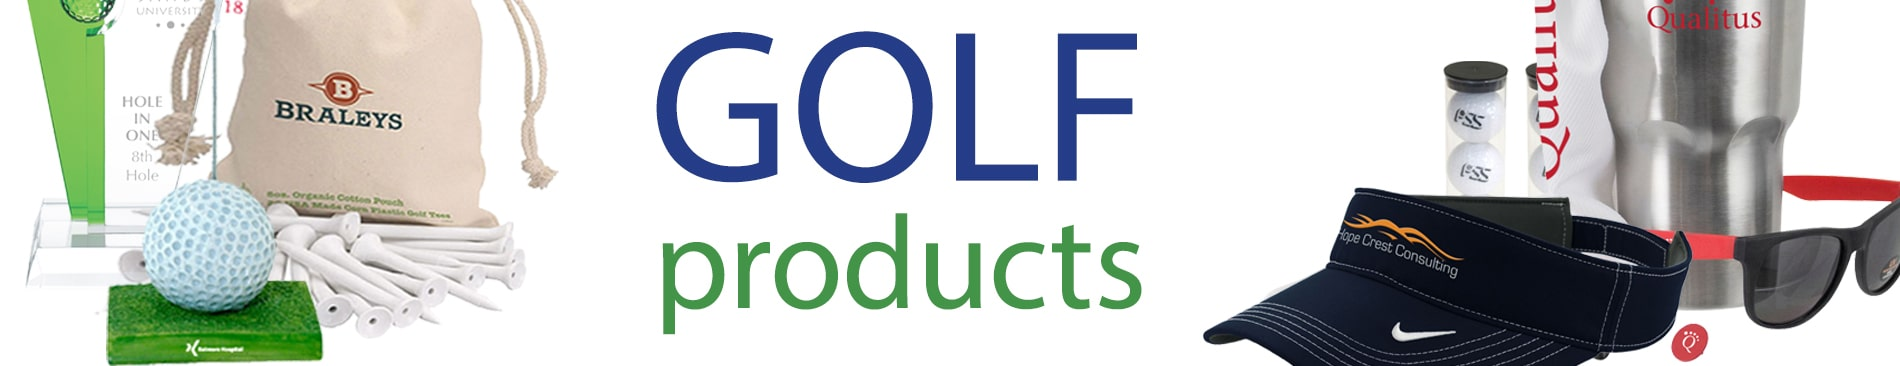 golf promotional items